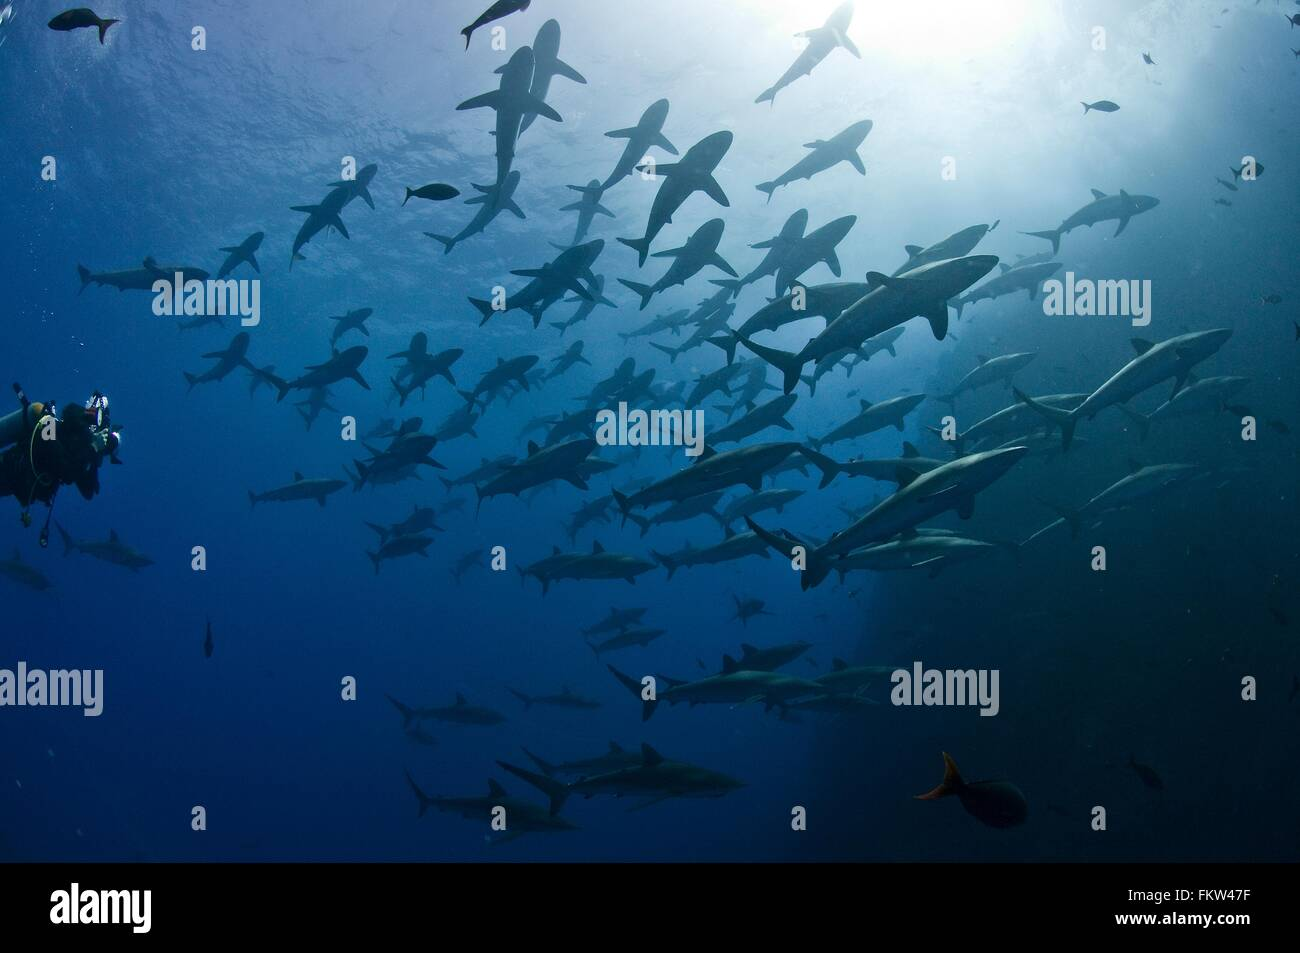 Scuba diver approaching a large school of silky sharks (Carcharhinus falciformis), Roca Partida, Revillagigedo, - Stock Image